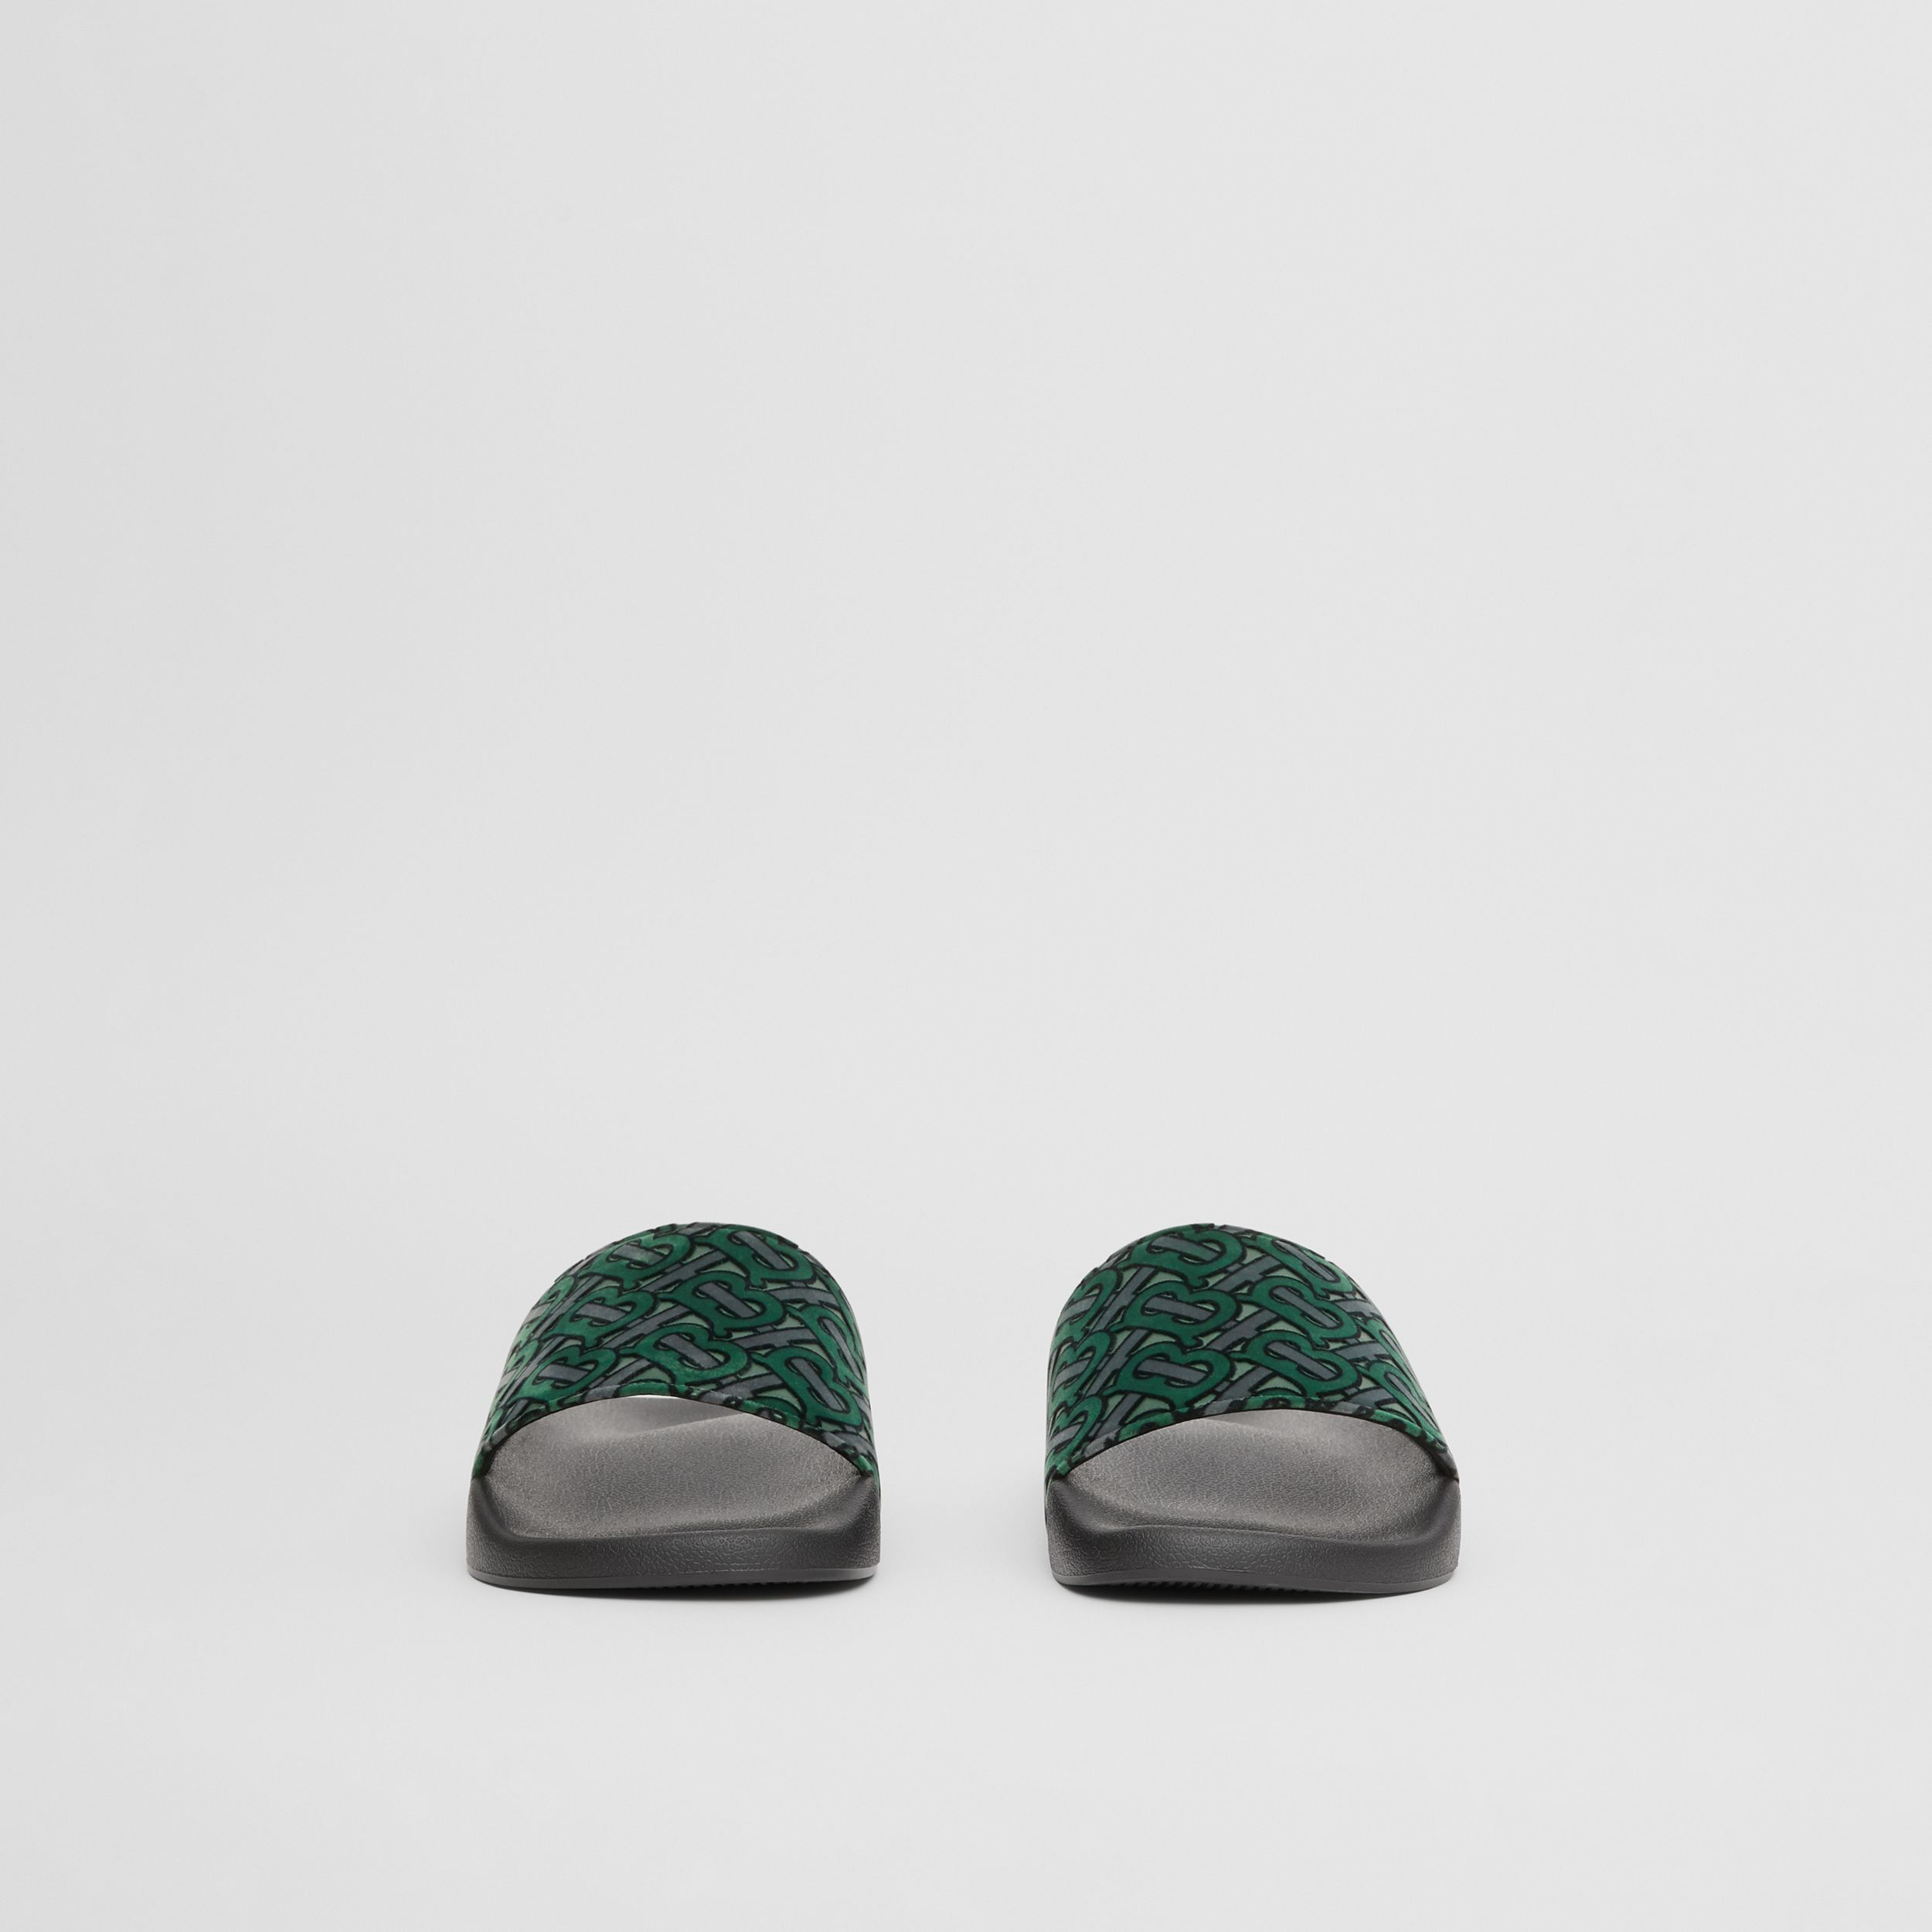 Monogram Flocked Leather Slides in Dark Forest Green - Men | Burberry - 4